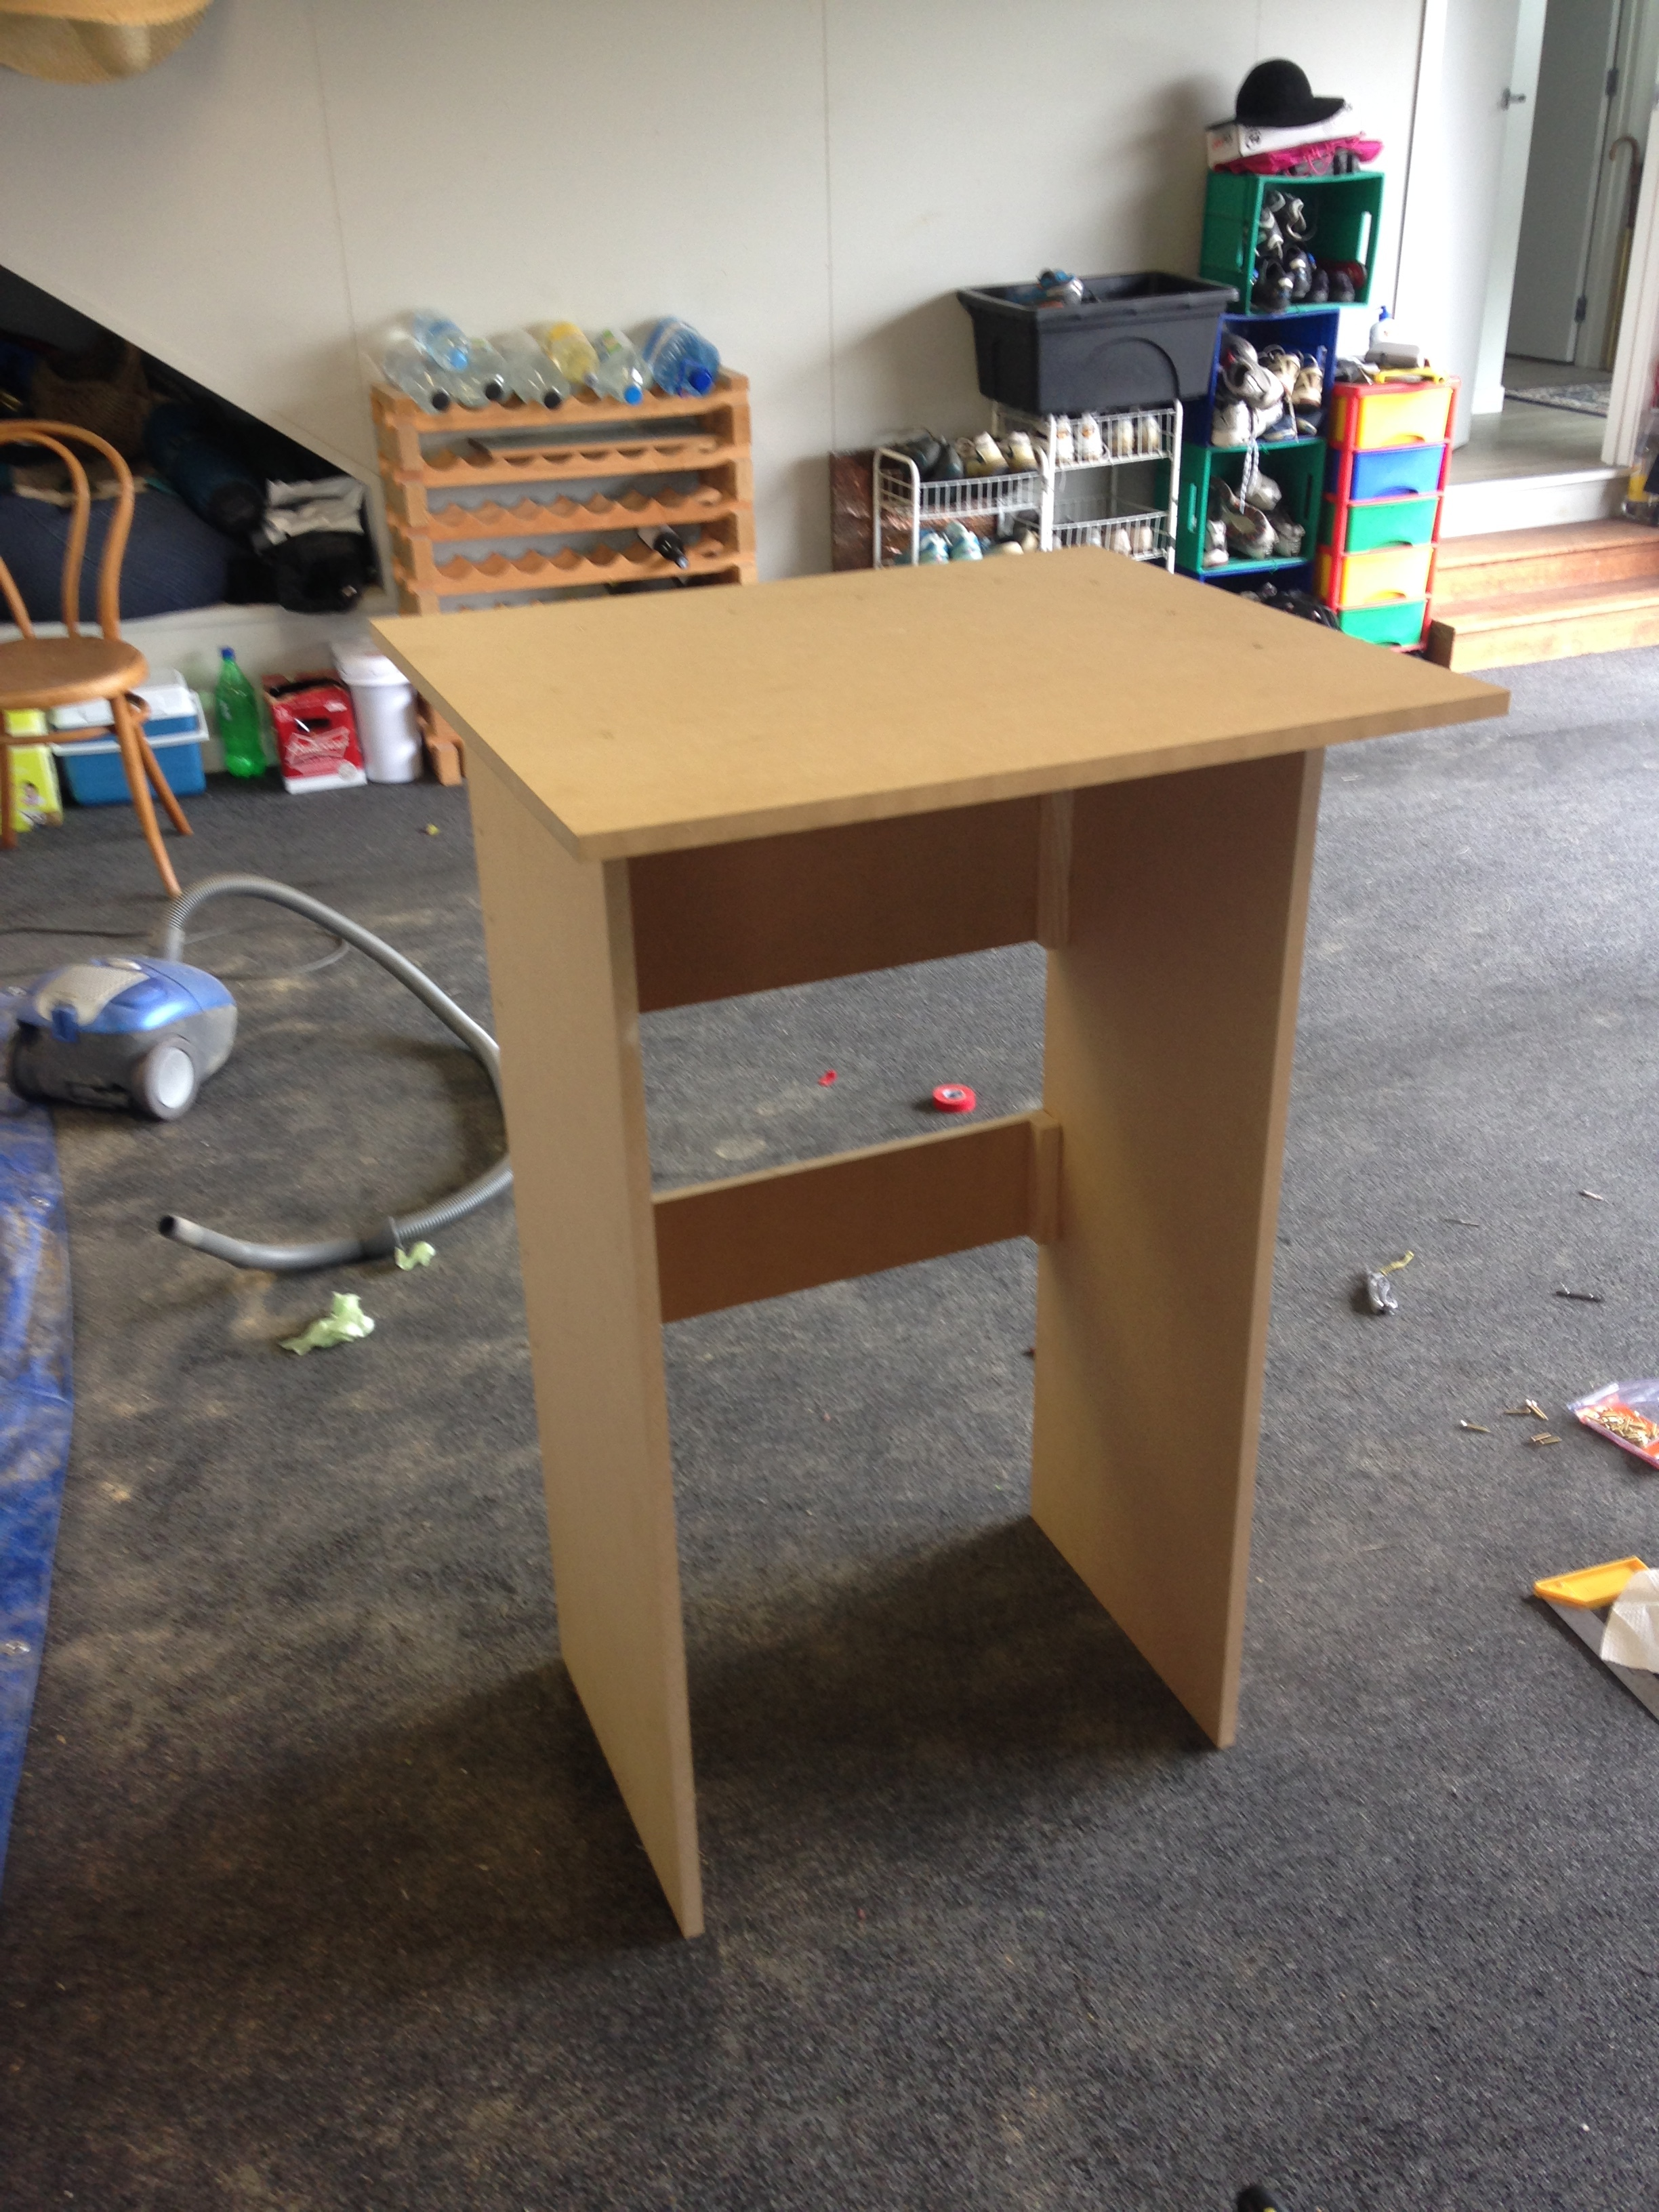 As well as that I made myself a standing desk! the cure for a sore back. I have never made anything significant out of wood on my own before so the process was a lot of fun and it turned out far better than I expected!